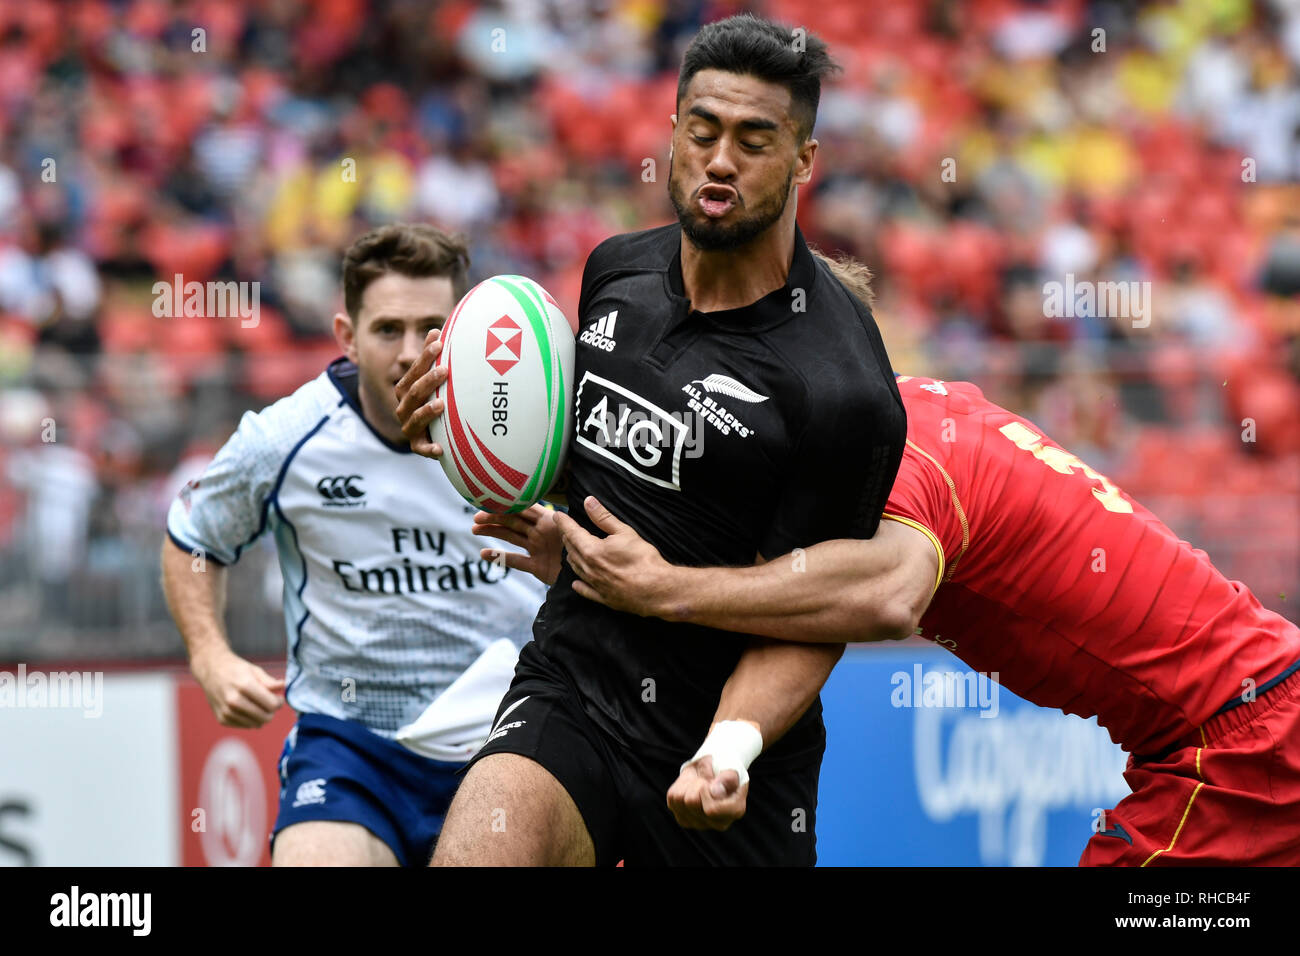 Spotless Stadium, Sydney, Australia. 2nd Feb, 2019. HSBC Sydney Rugby Sevens; New Zealand versus Spain; Regan Ware of New Zealand runs past Manuel Sainz-Trapaga of Spain on his way to scoring a try Credit: Action Plus Sports/Alamy Live News - Stock Image